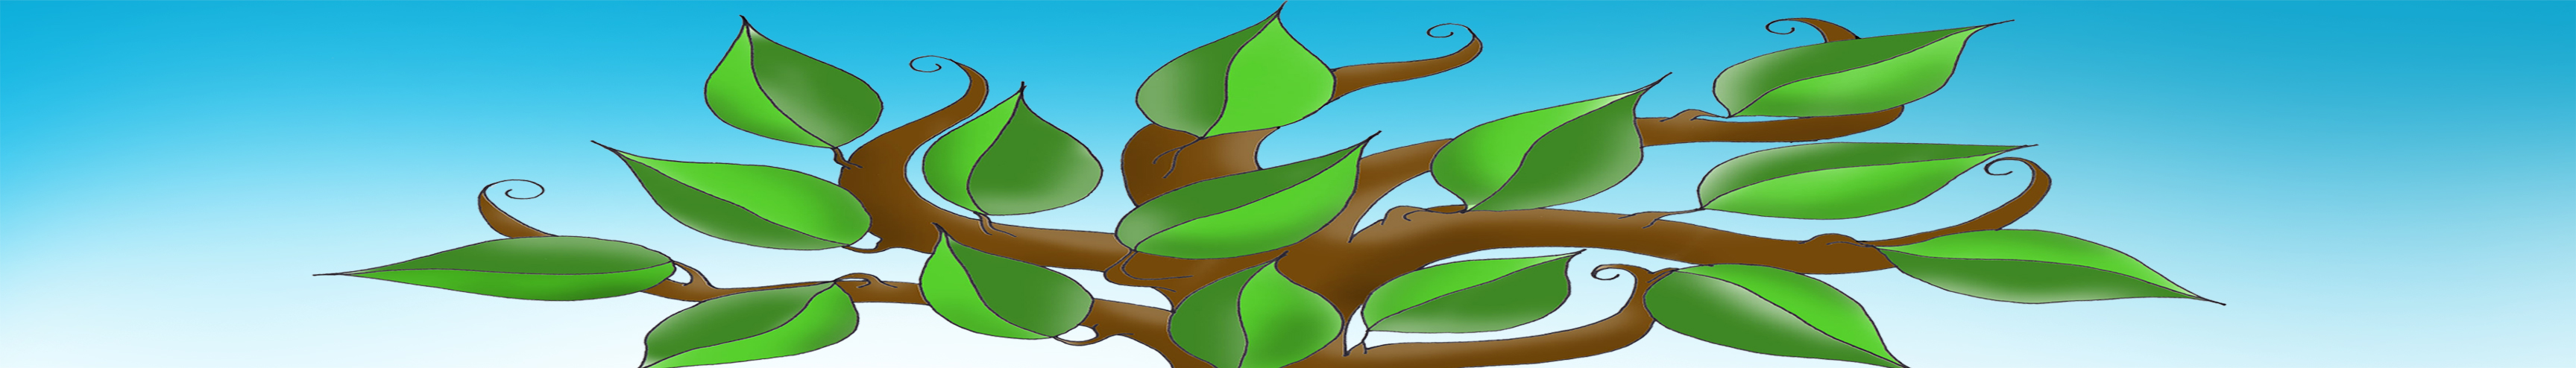 Arid Zone clipart #3, Download drawings